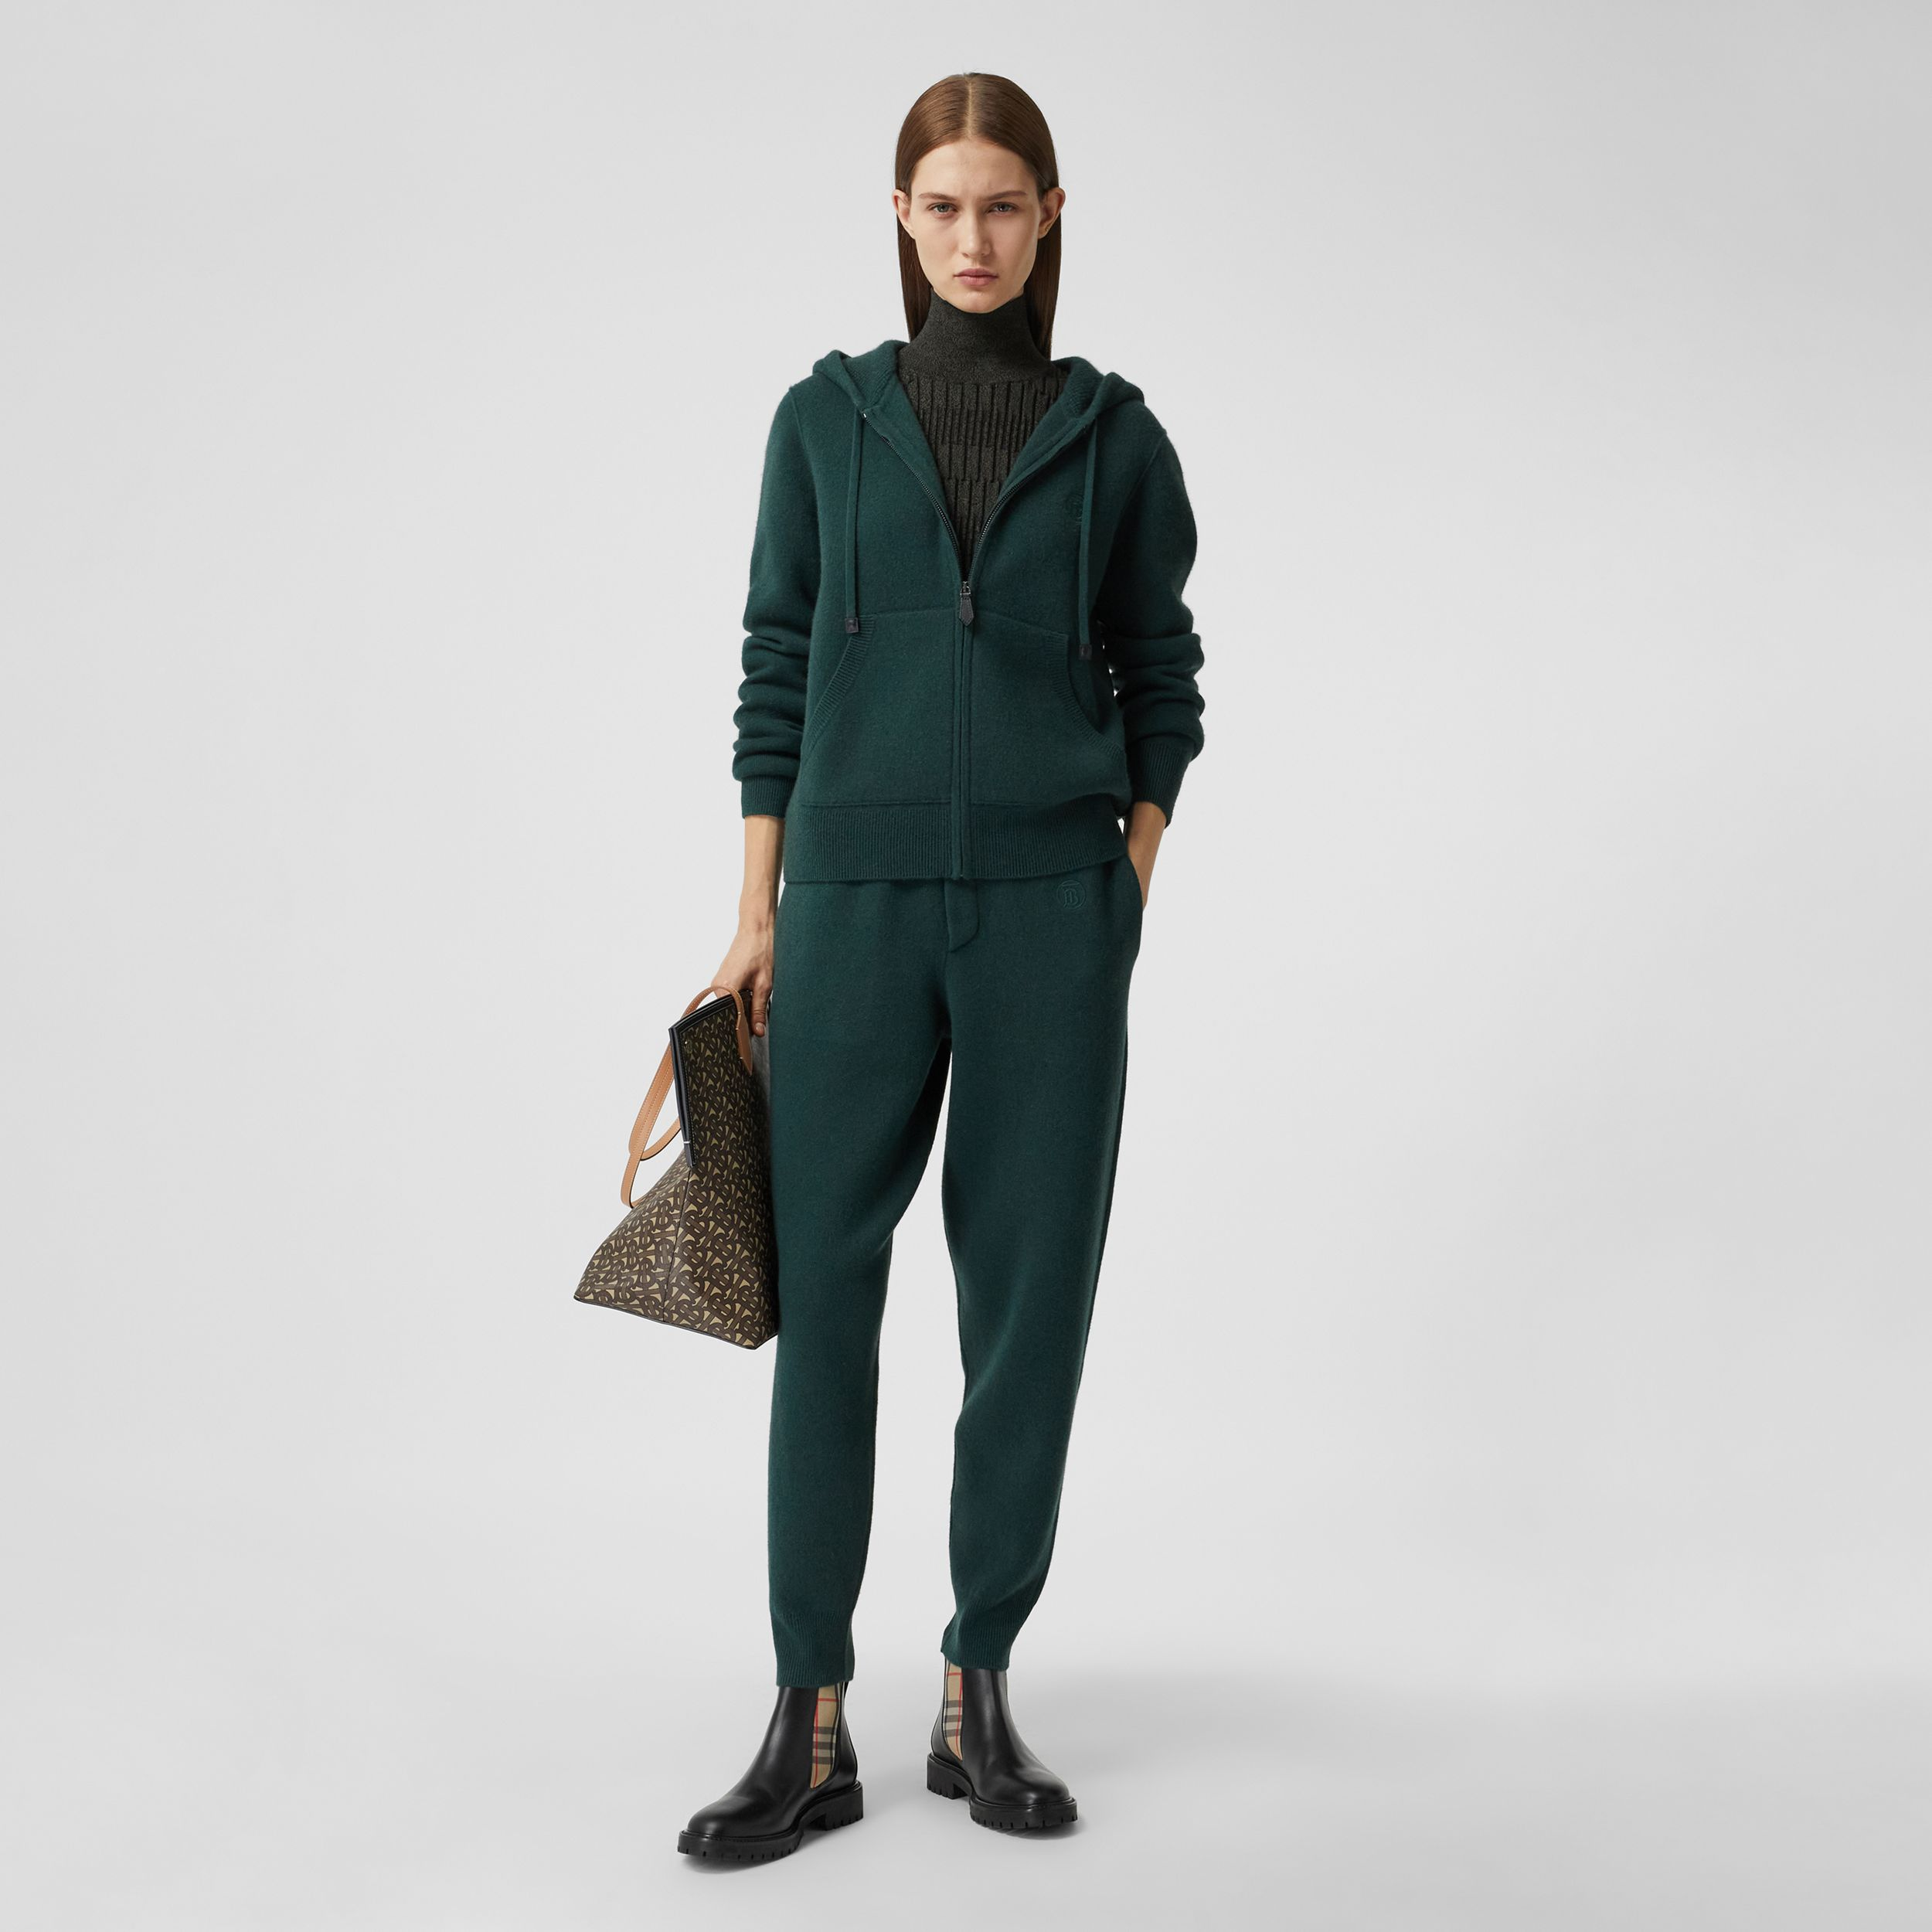 Monogram Motif Cashmere Blend Hooded Top in Bottle Green - Women | Burberry - 1